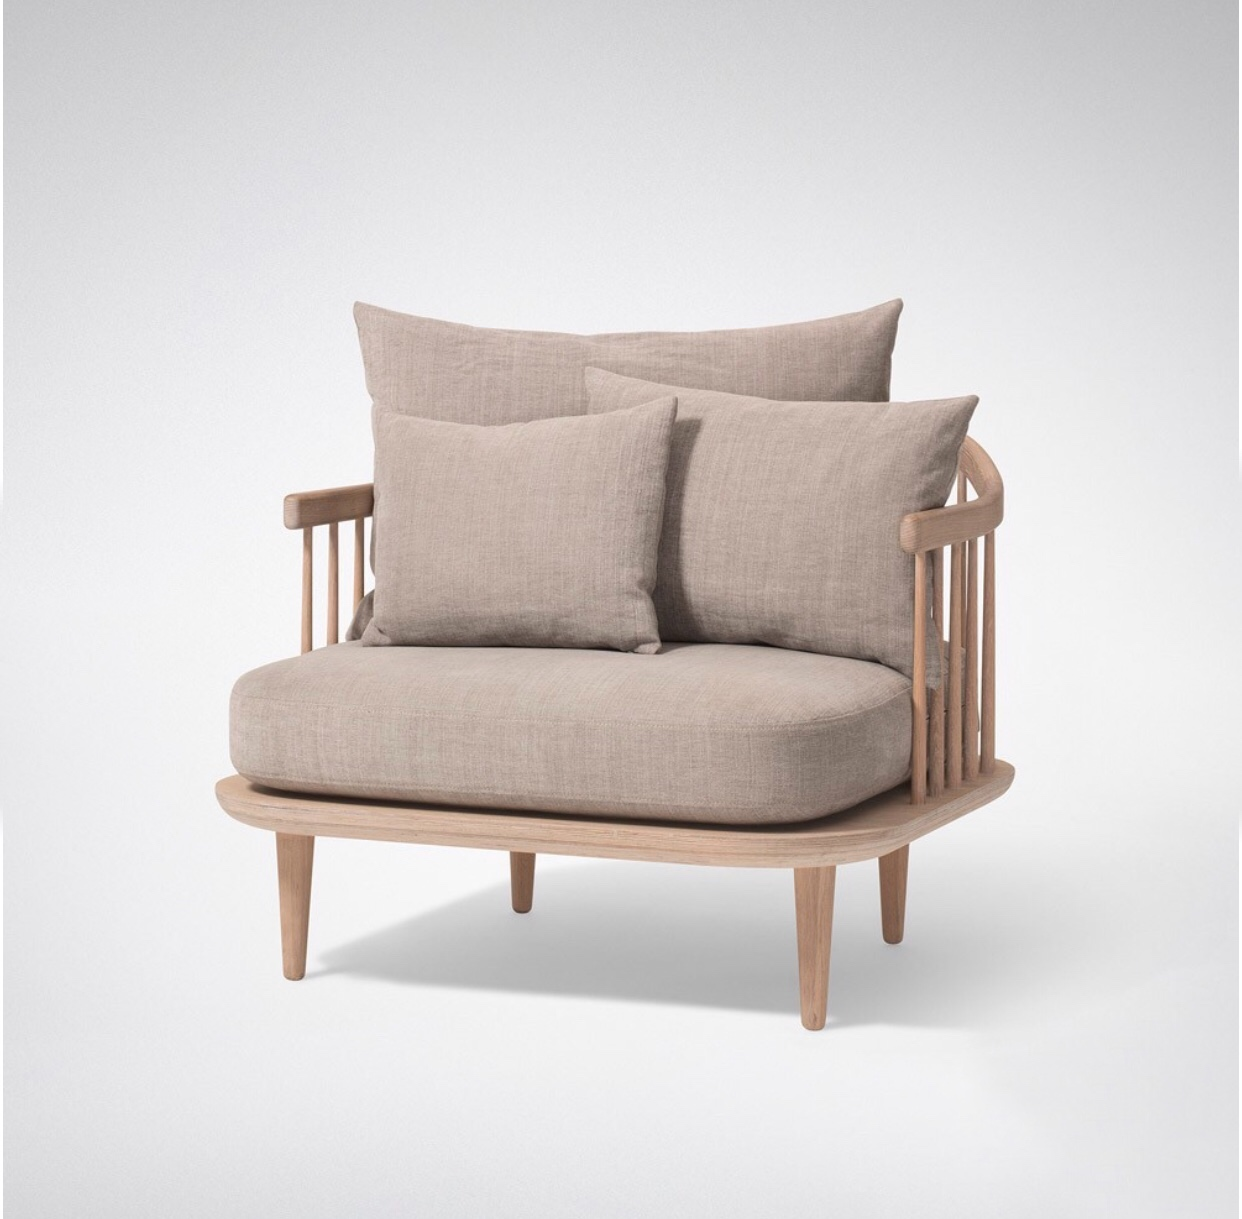 & Tradition FLY Chair SC1 White Oiled Oak  -  Hsuseology £2,140